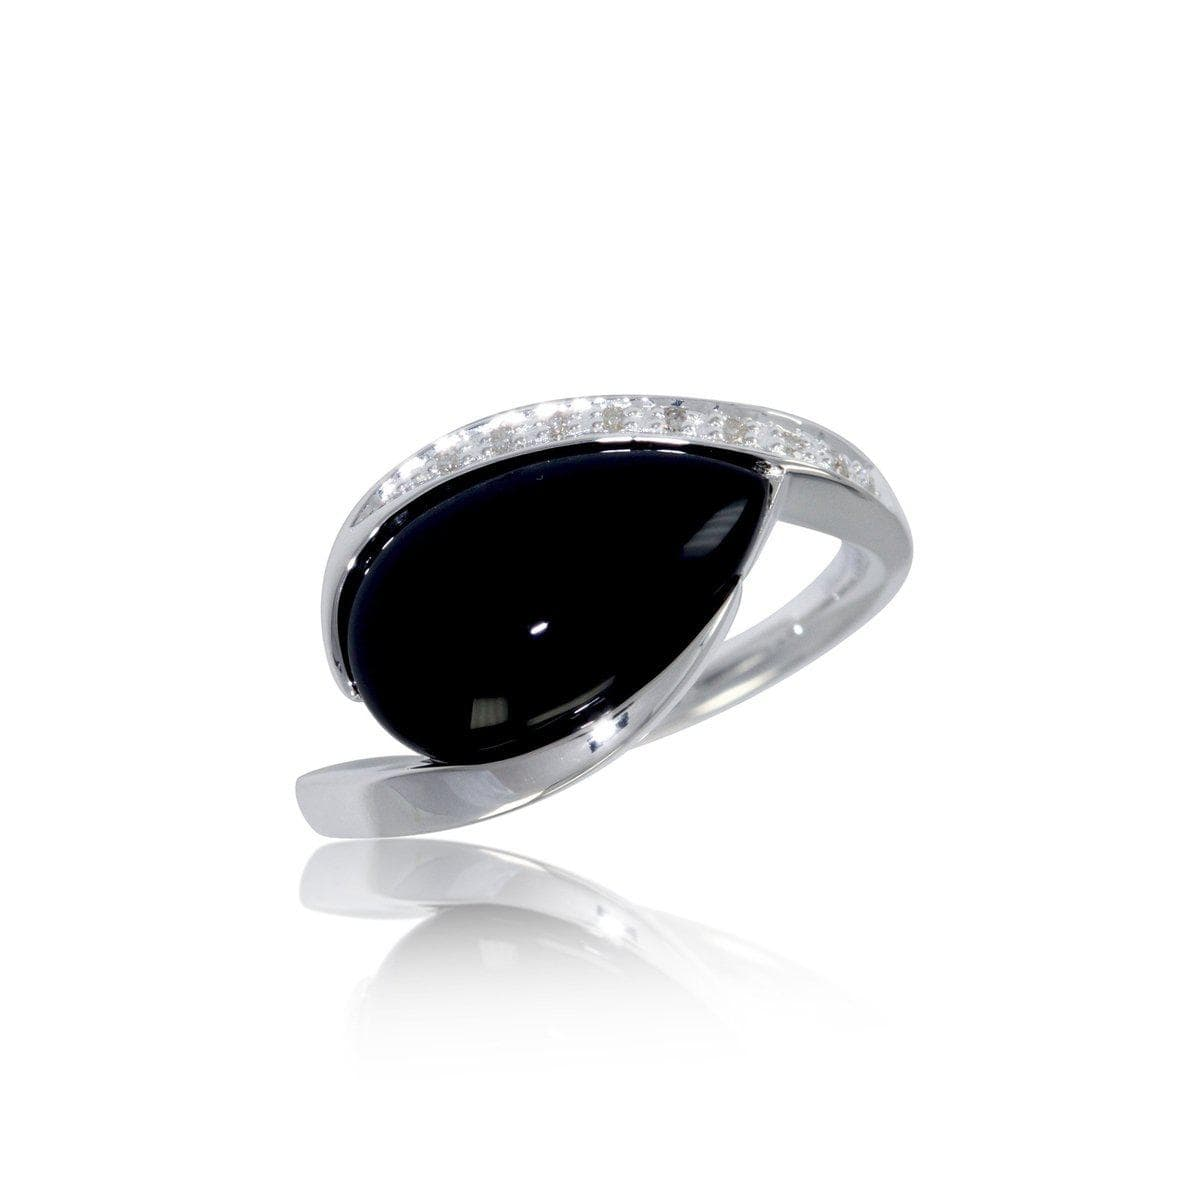 Rhodium Plated Sterling Silver Onyx & Brilliant Diamond Ring - 41/82651-Breuning-Renee Taylor Gallery